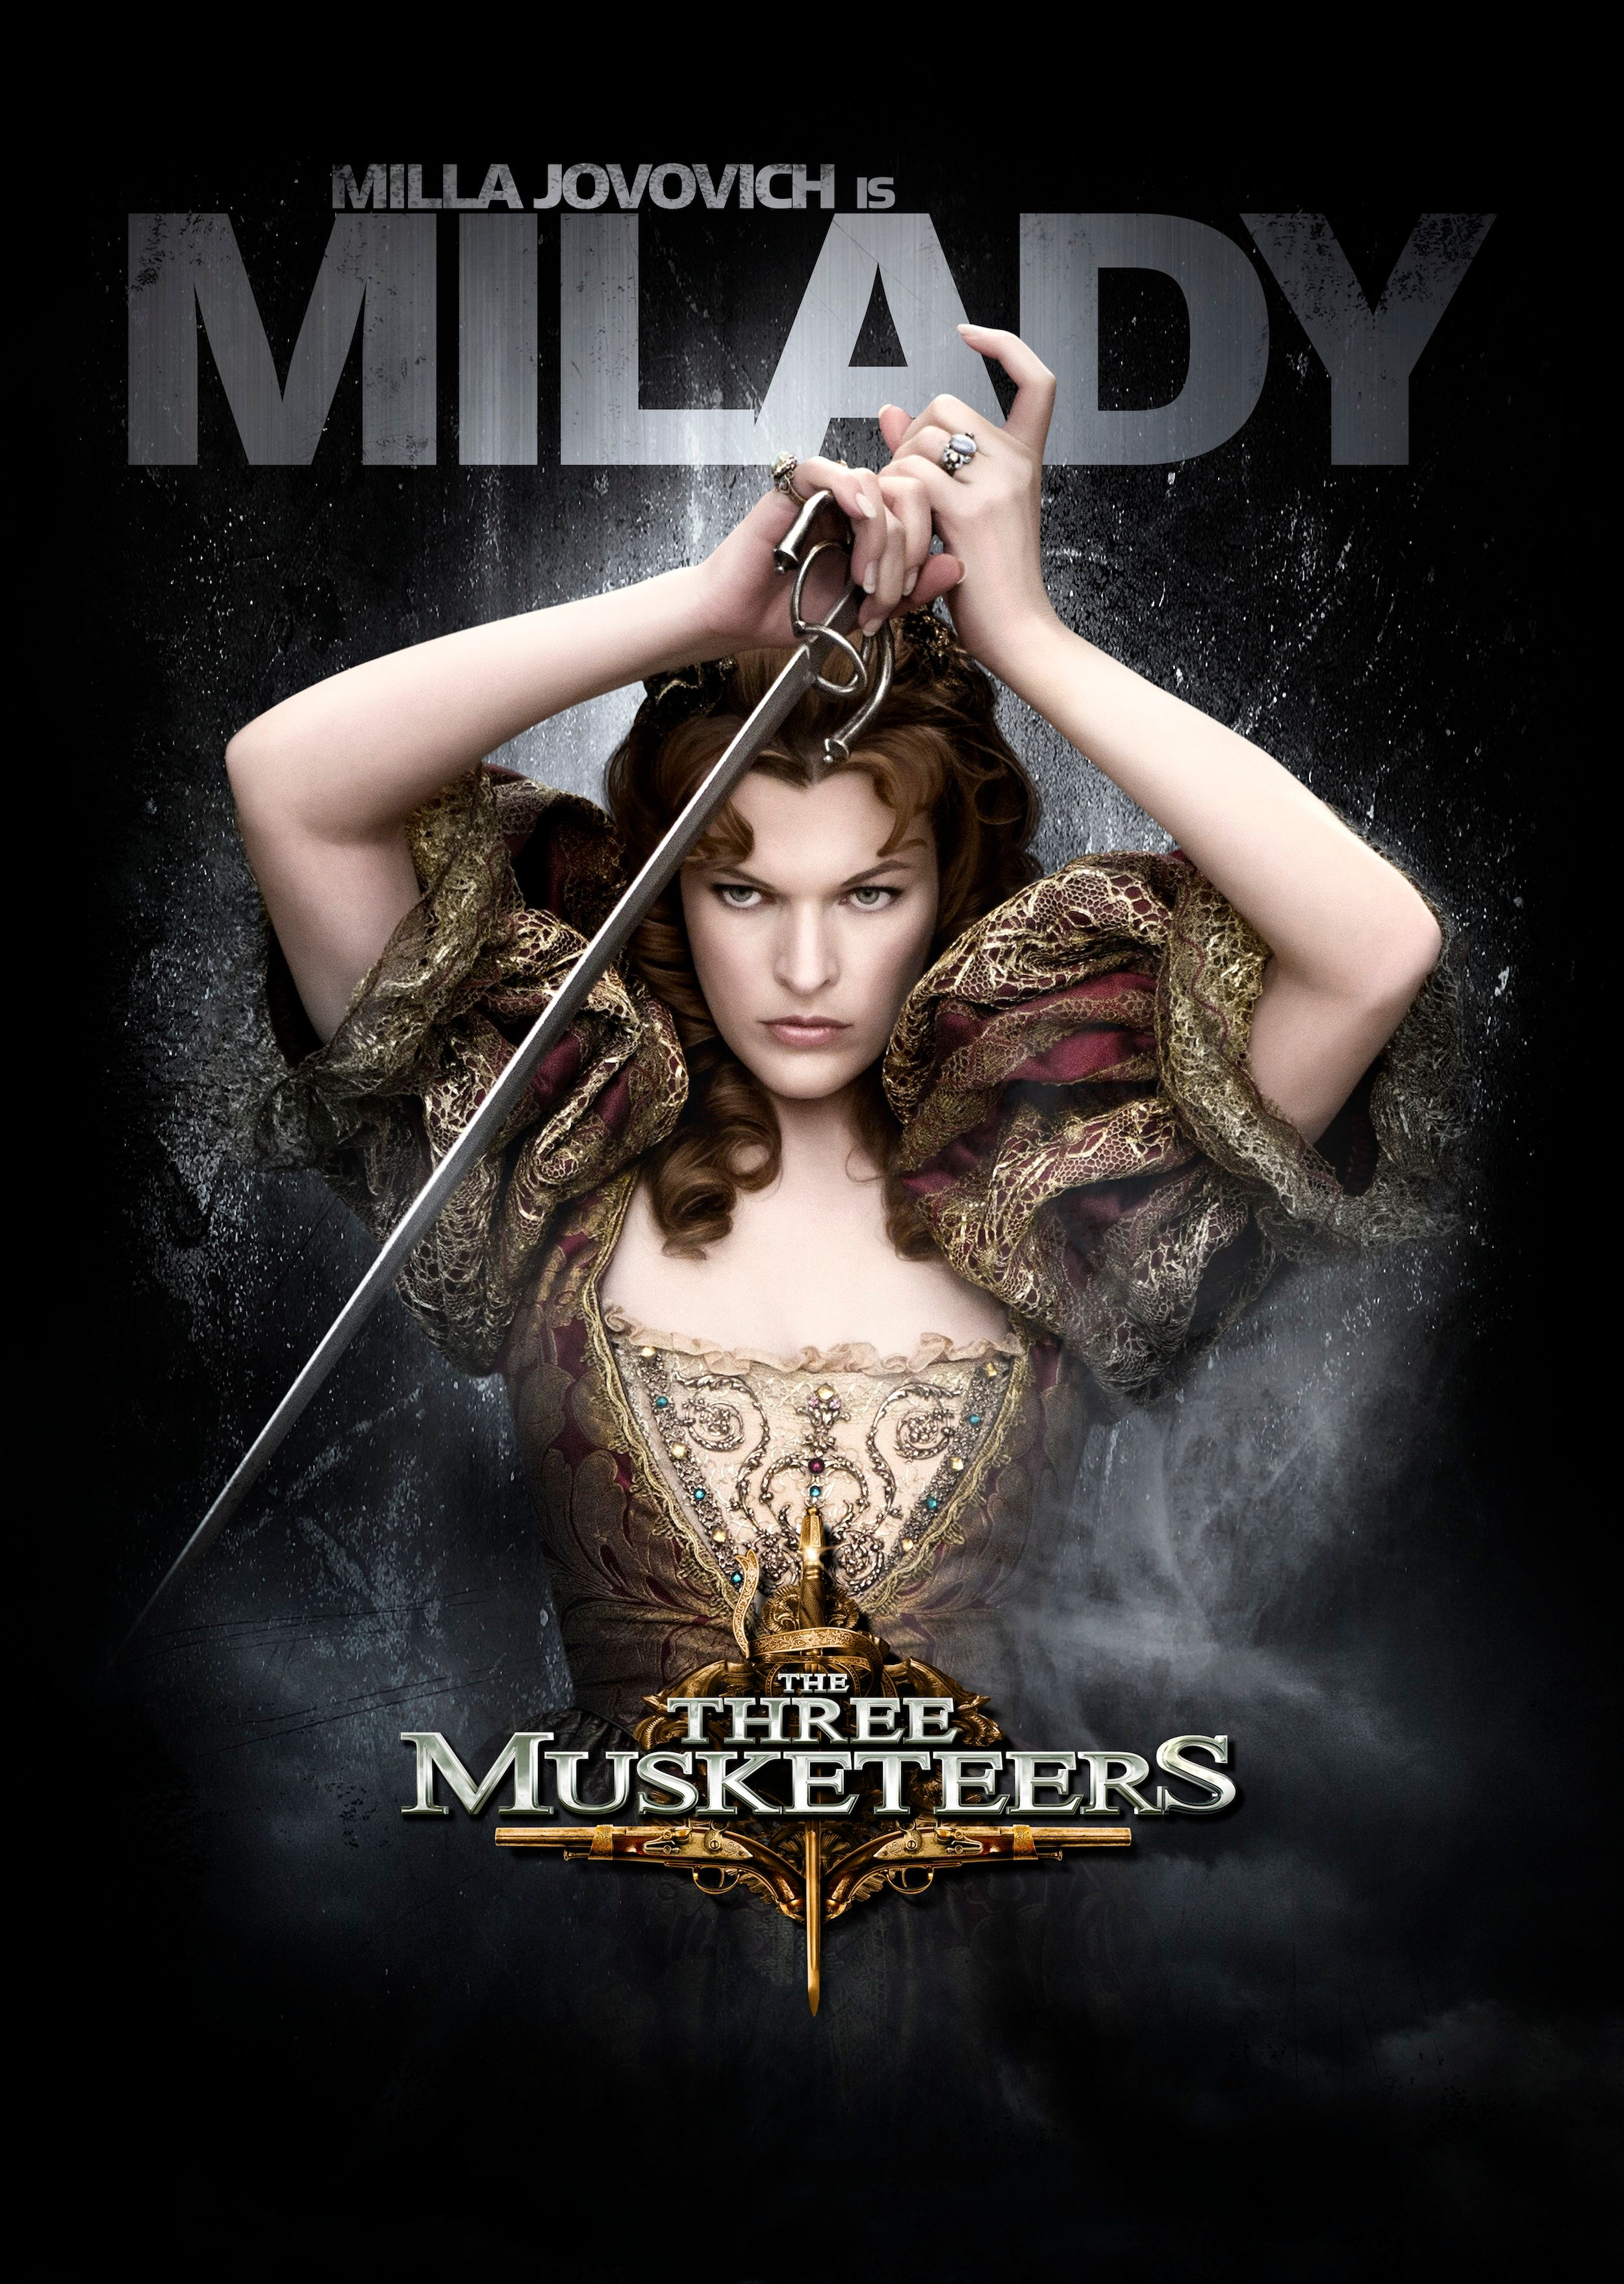 THE THREE MUSKETEERS Movie Clips | Collider